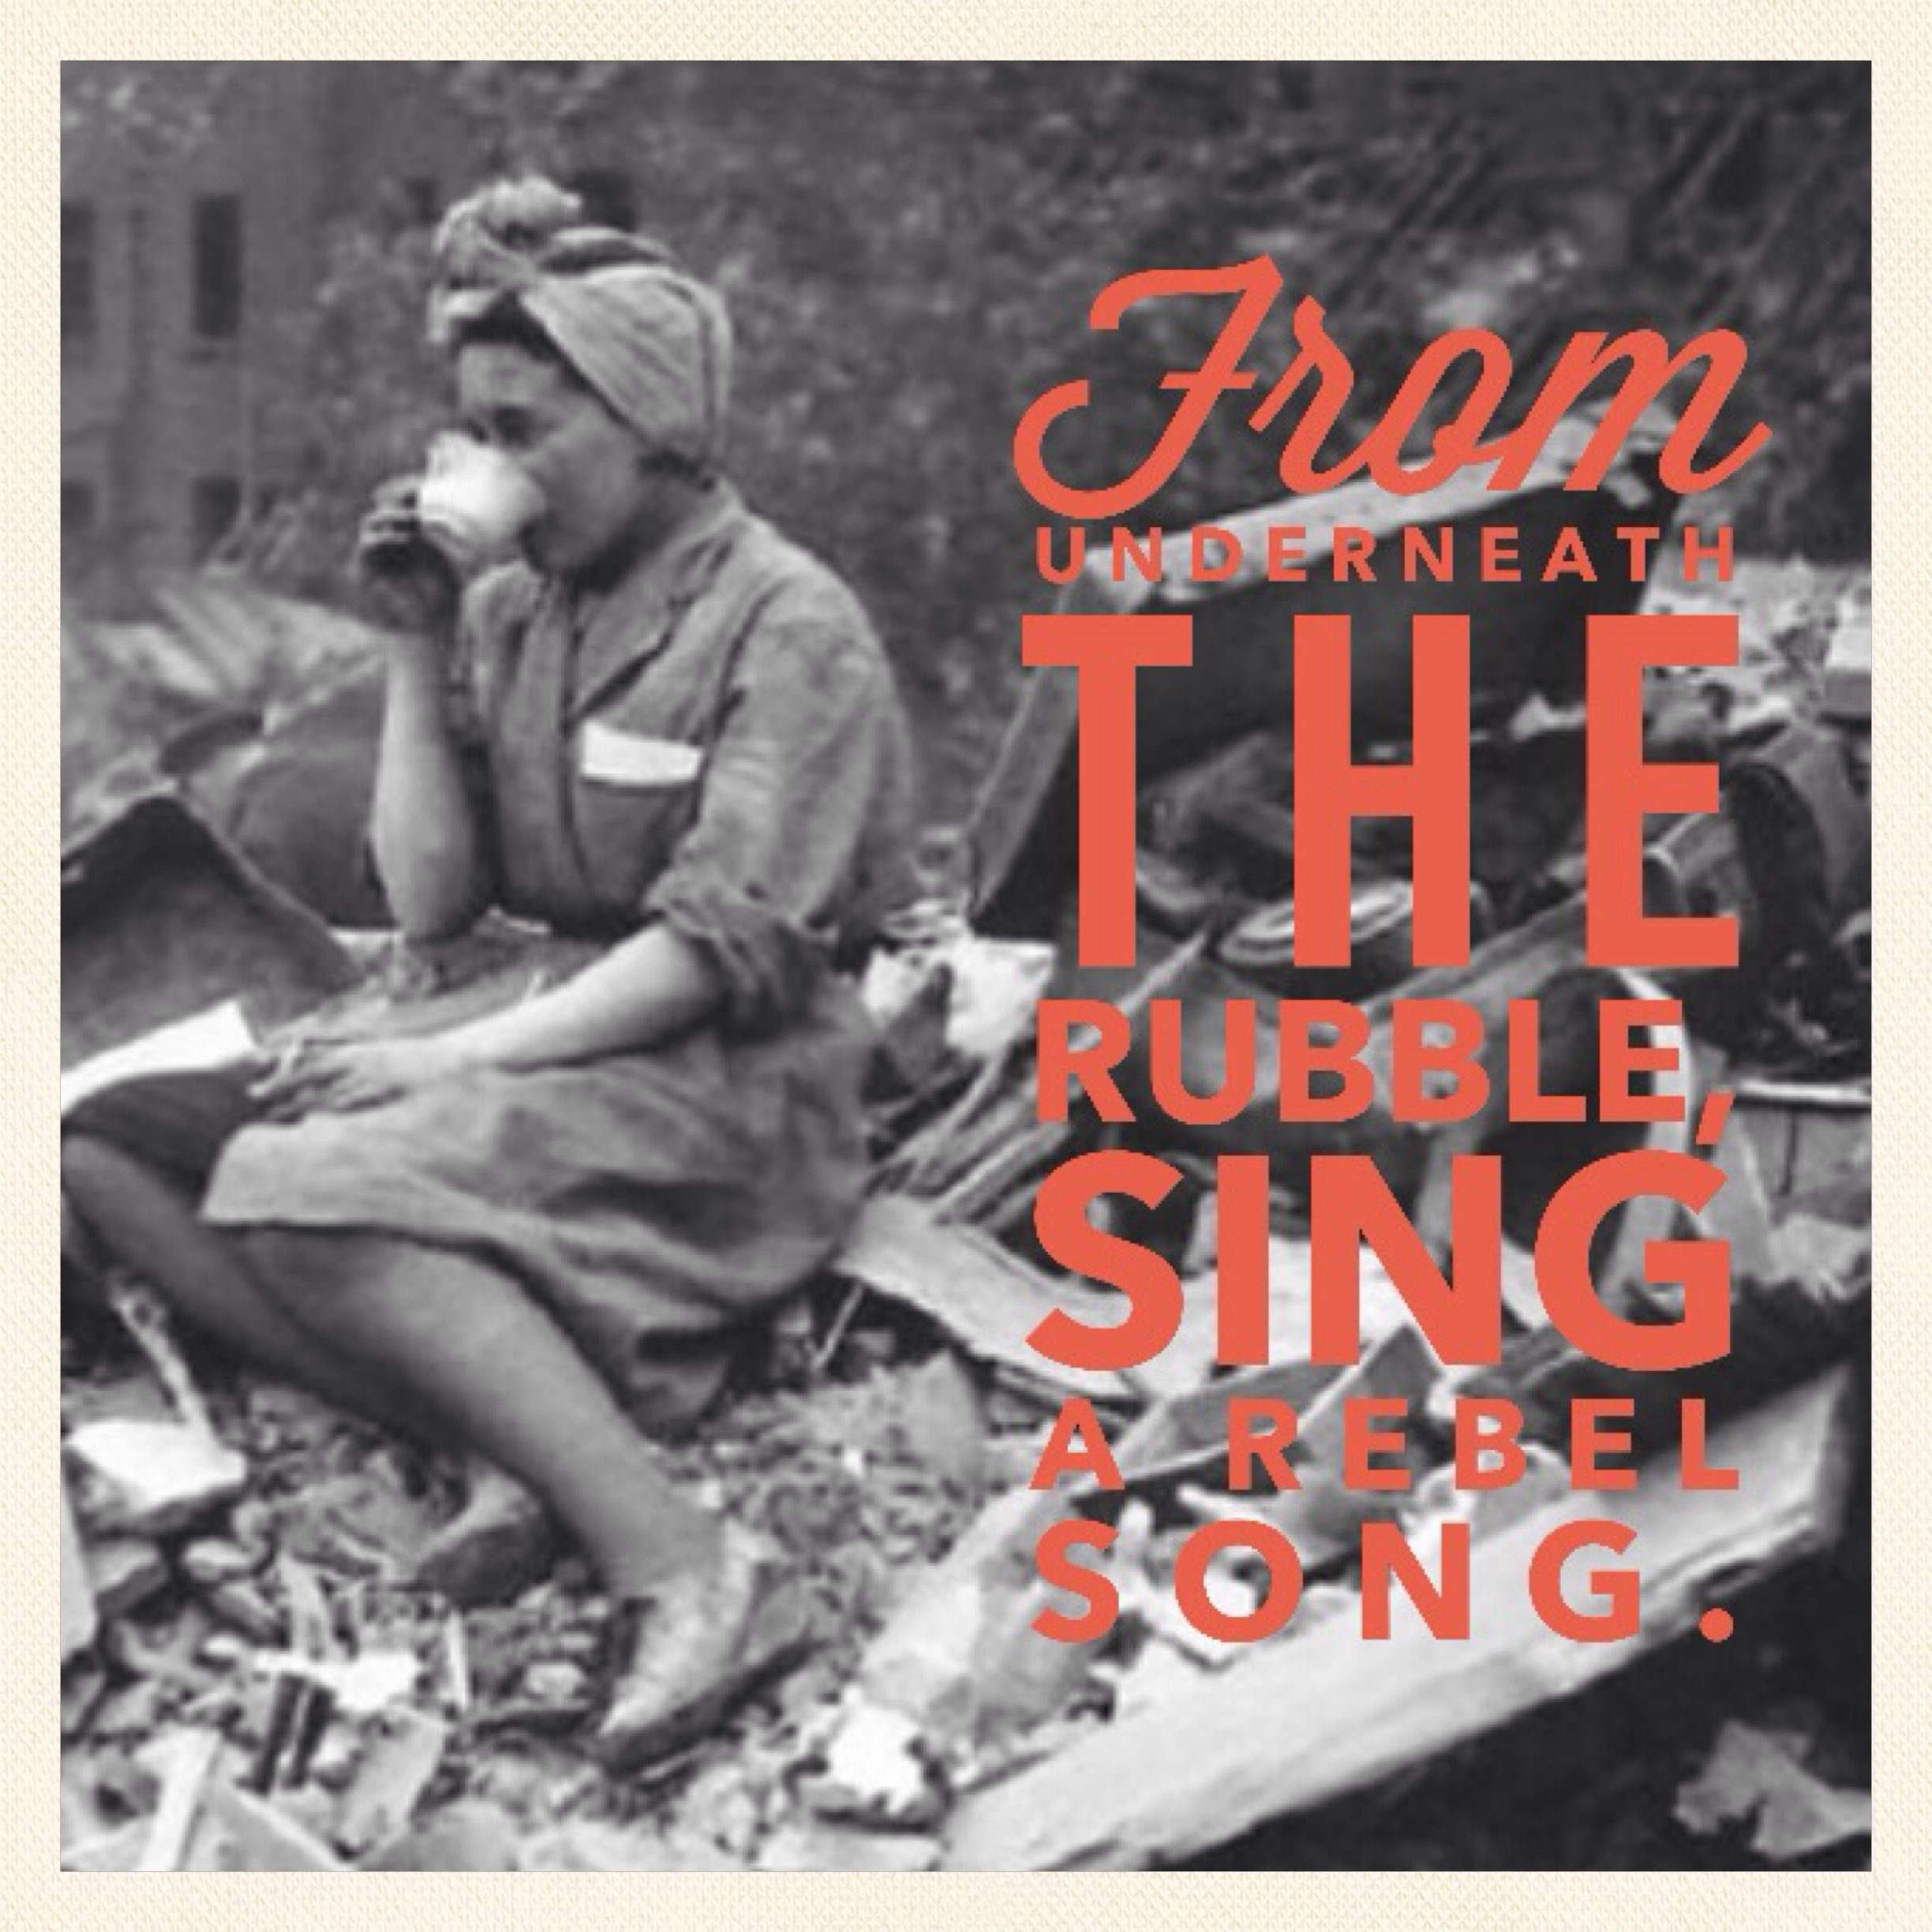 From the rubble, sing a rebel song.